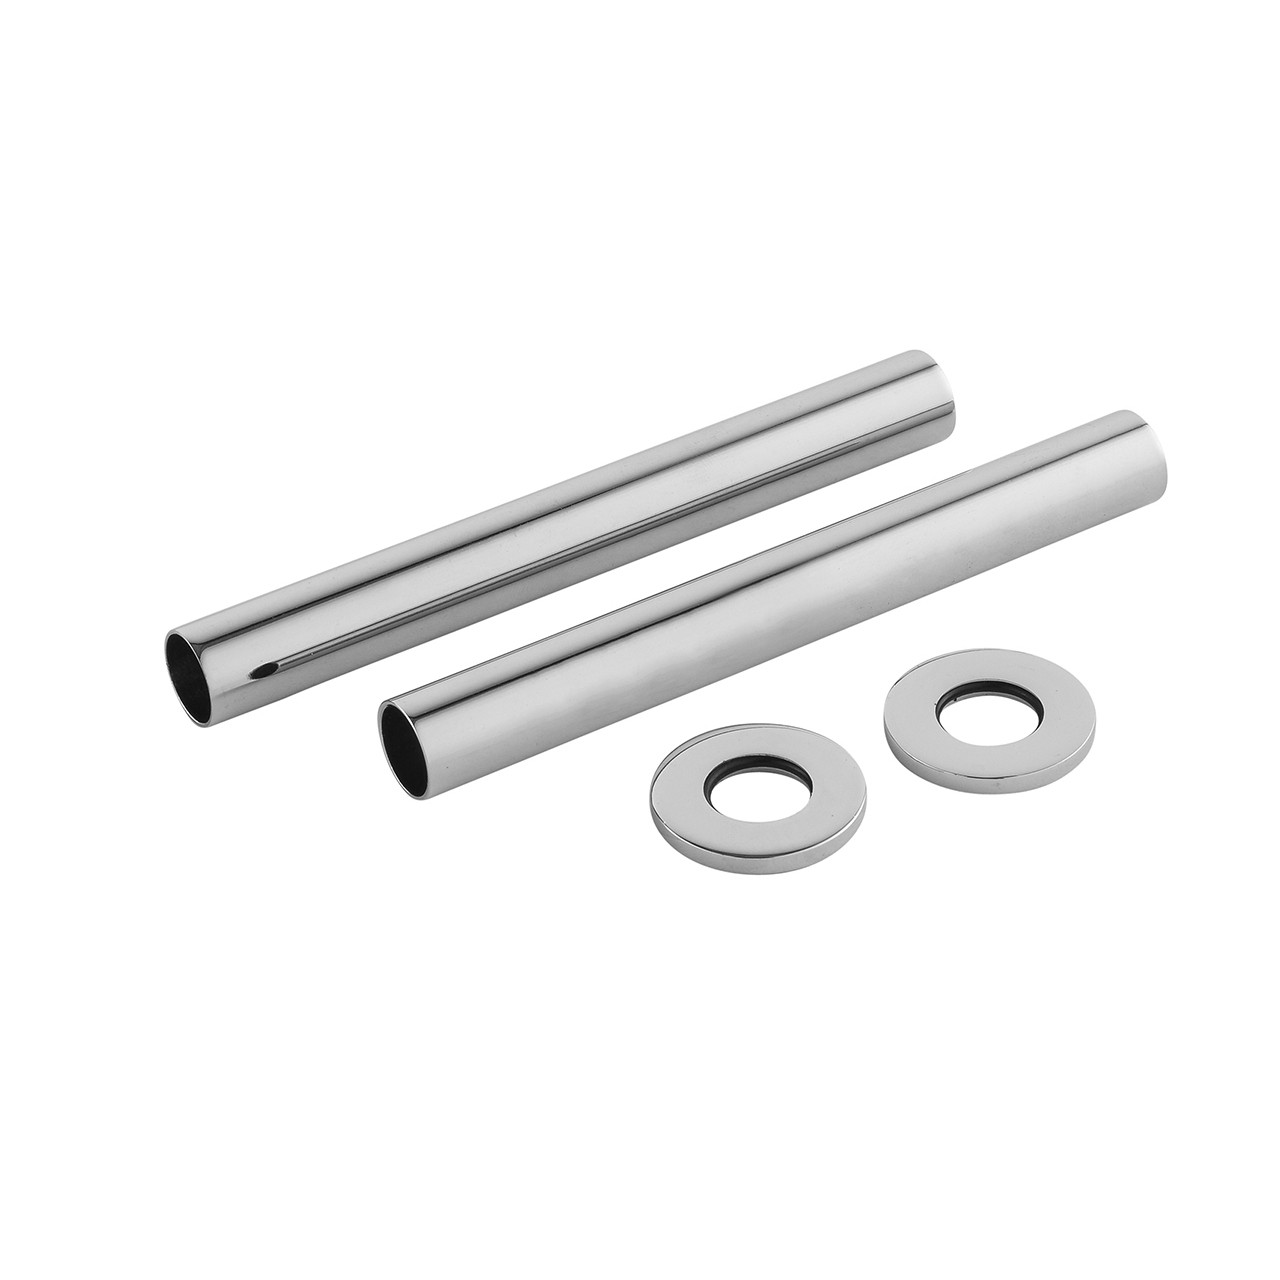 Premier Chrome Pipe Covers 128mm x 15mm - EA367